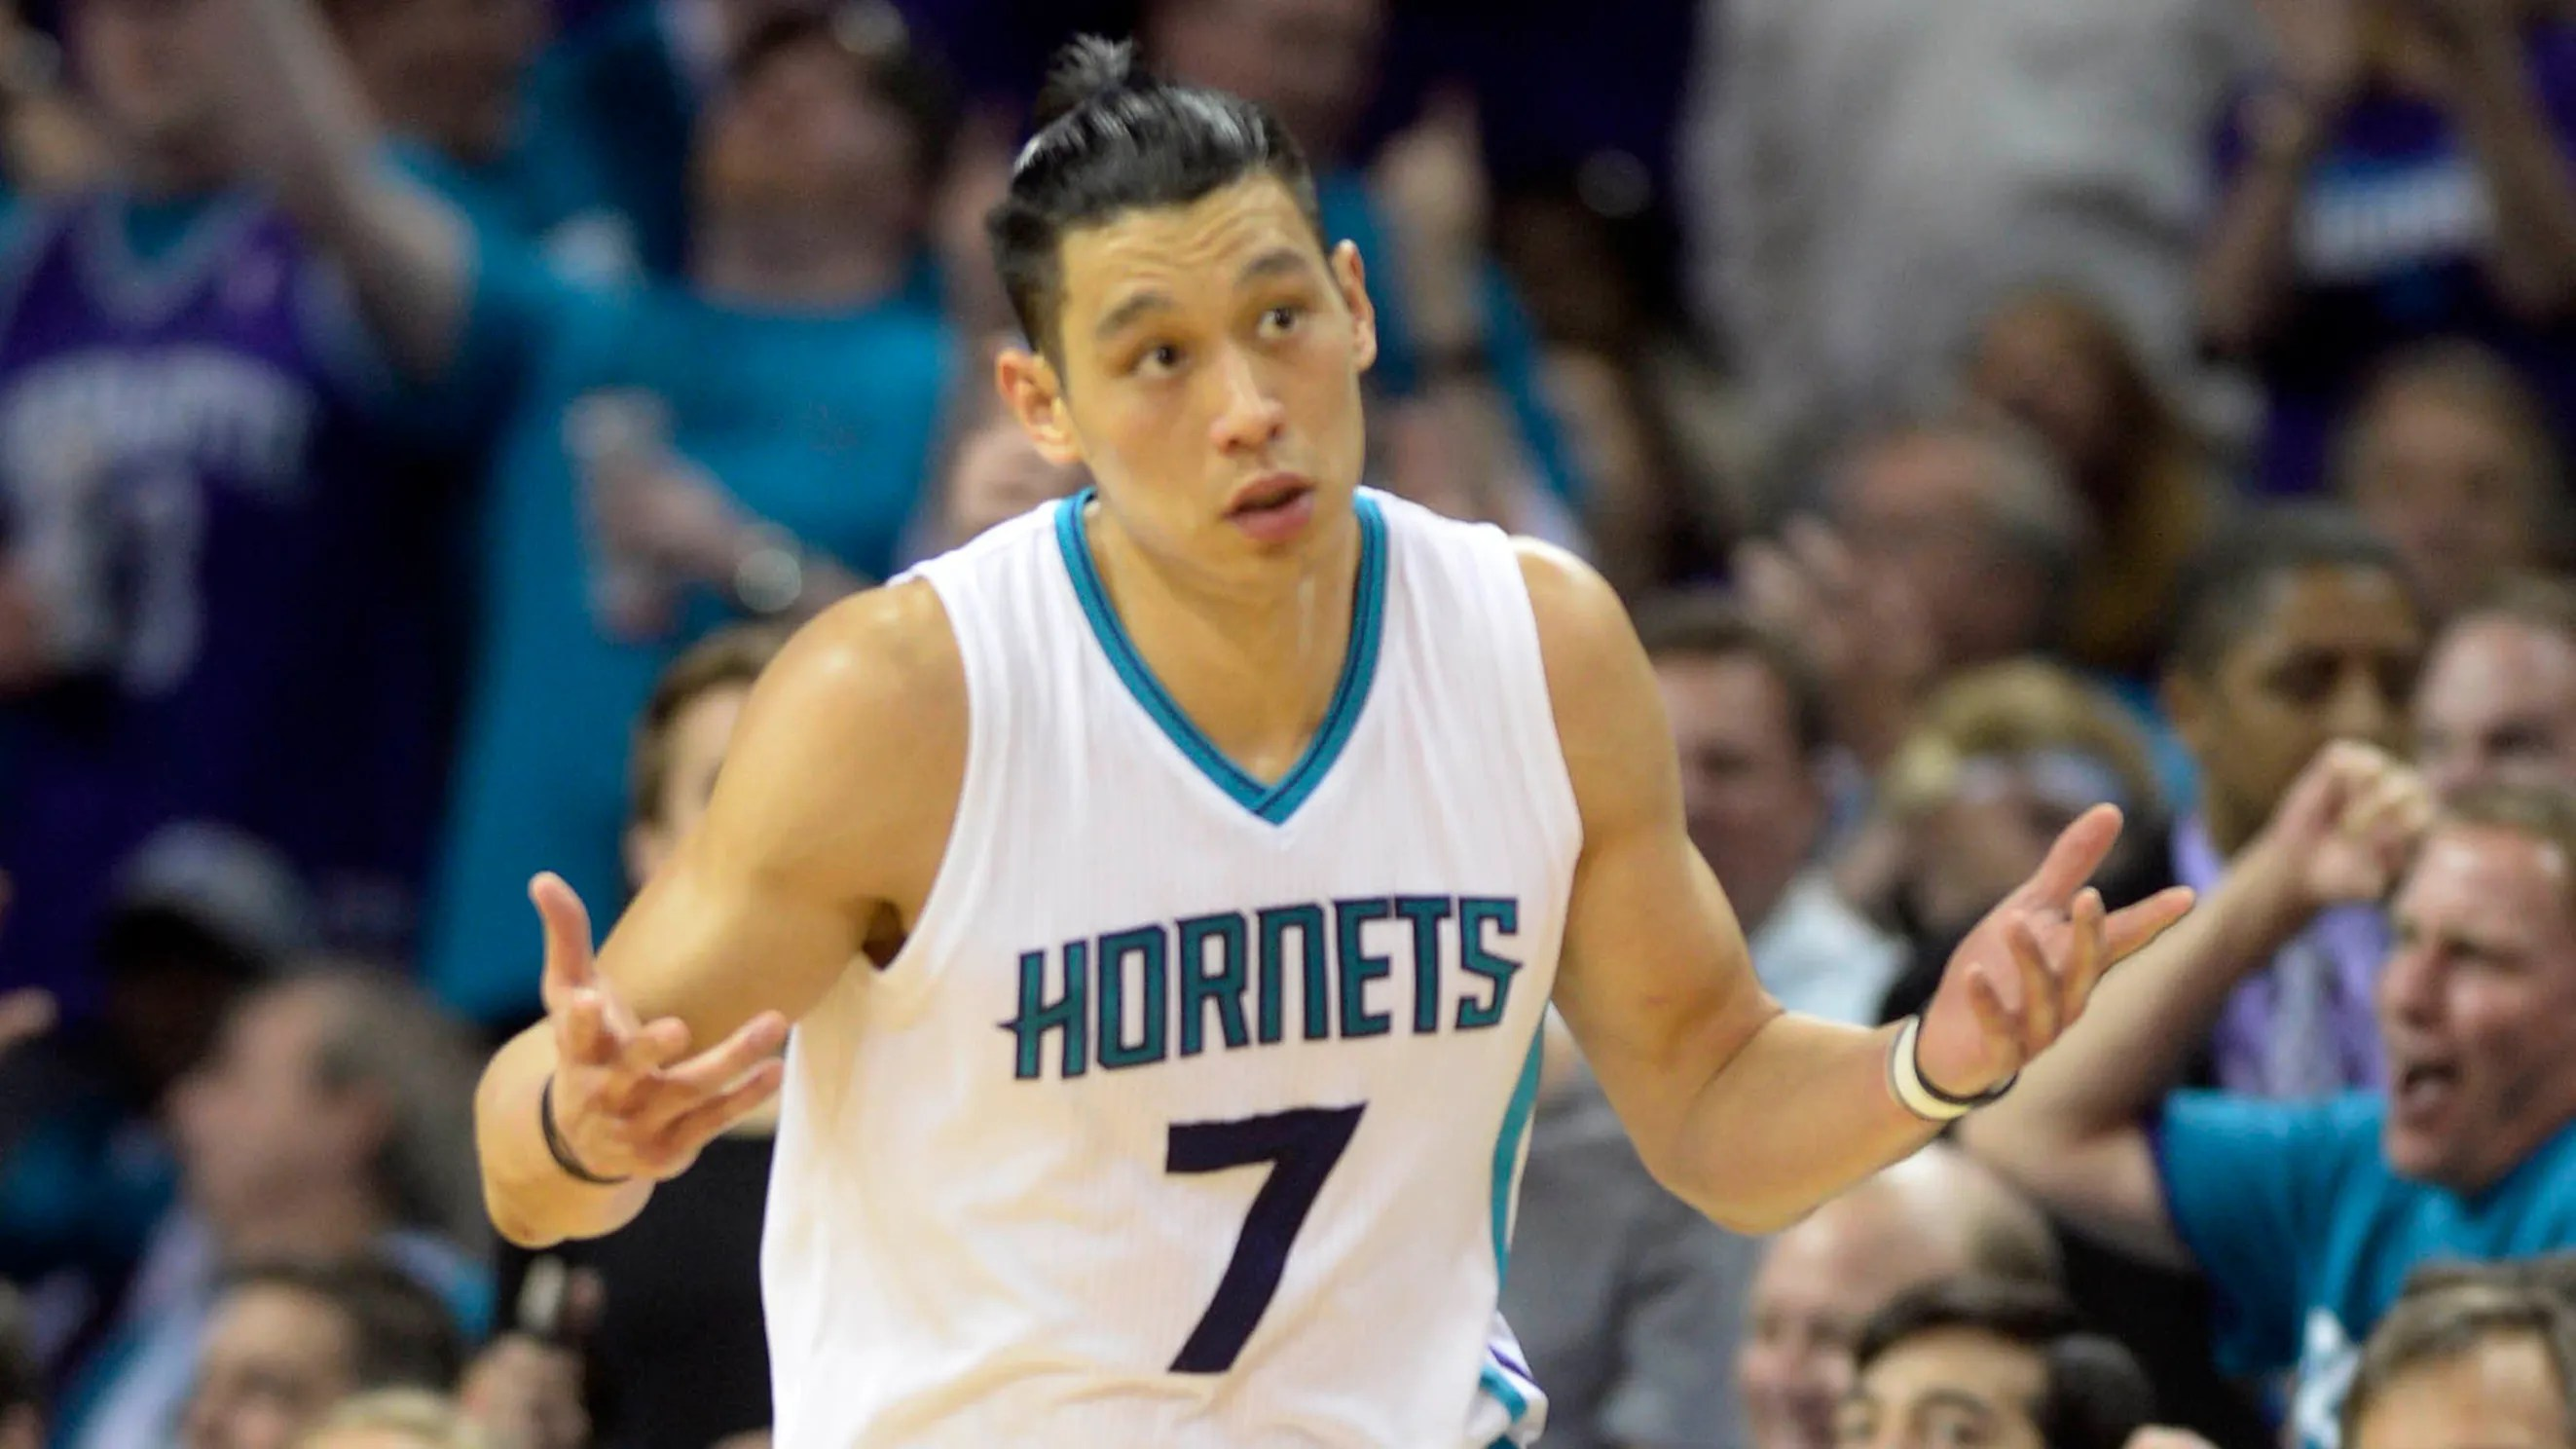 Jeremy Lins Mini Man Bun Might Give Him Jordans